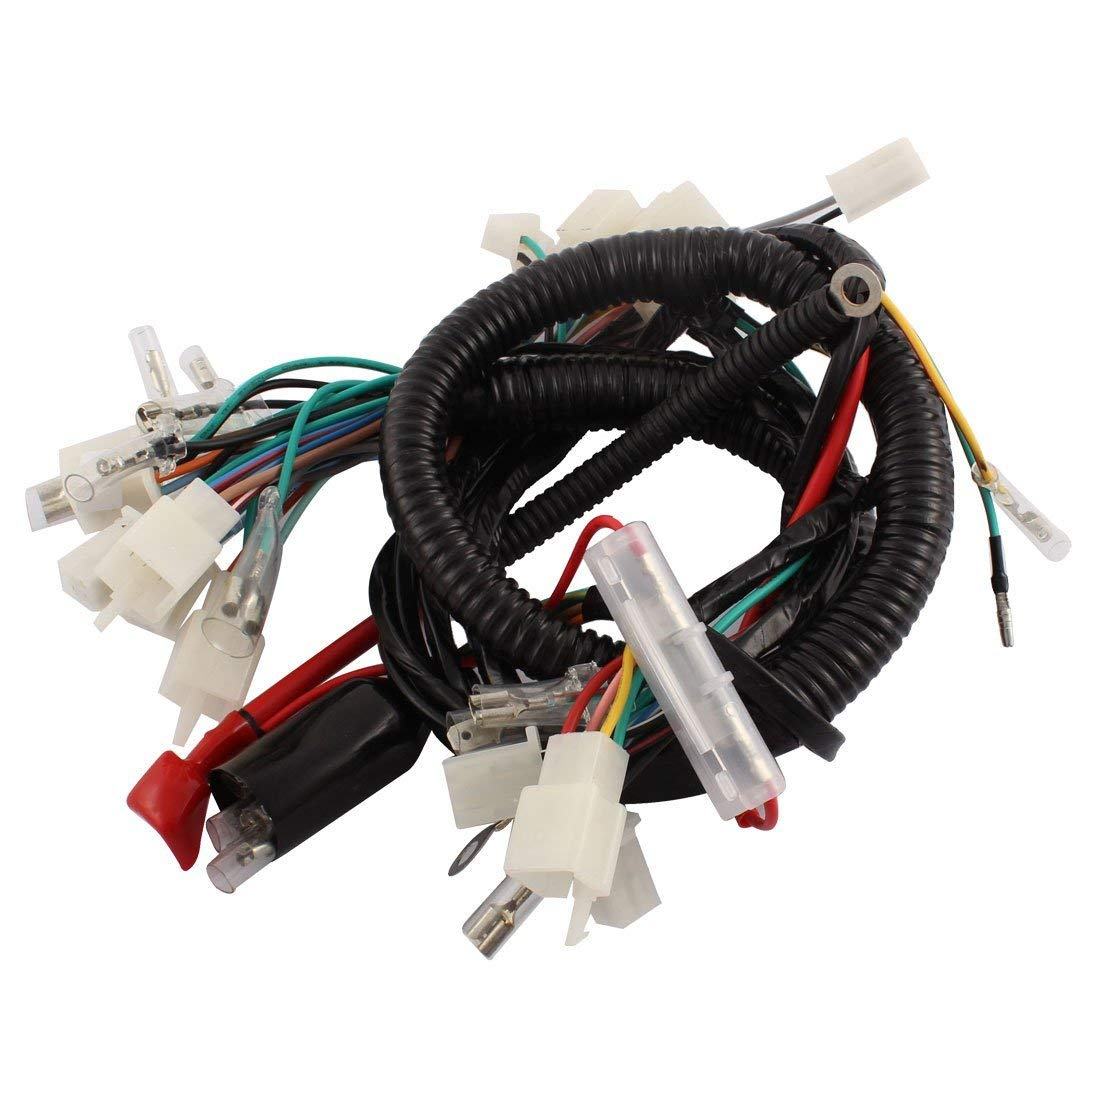 motorcycle accessory wiring uxcell    motorcycle    electrical main    wiring    harness in  uxcell    motorcycle    electrical main    wiring    harness in